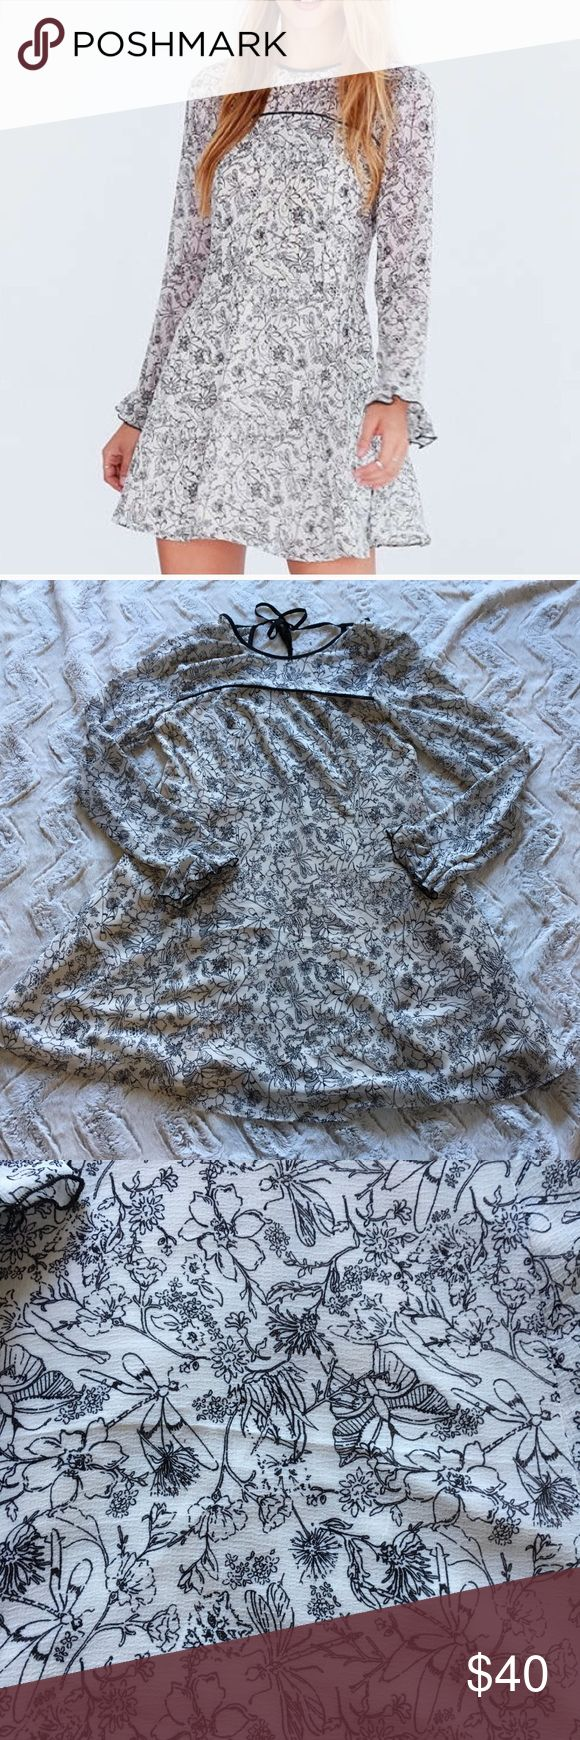 Kimchi Bleu Dragonfly Sheer Yoke Mini Frock Dress Super cute Urban Outfiters Kimchi Blue mini dress! Great condition, a little bit of wear on the back tie ribbon as shown in picture. Feel free to message me with any questions you have. Kimchi Blue Dresses Mini